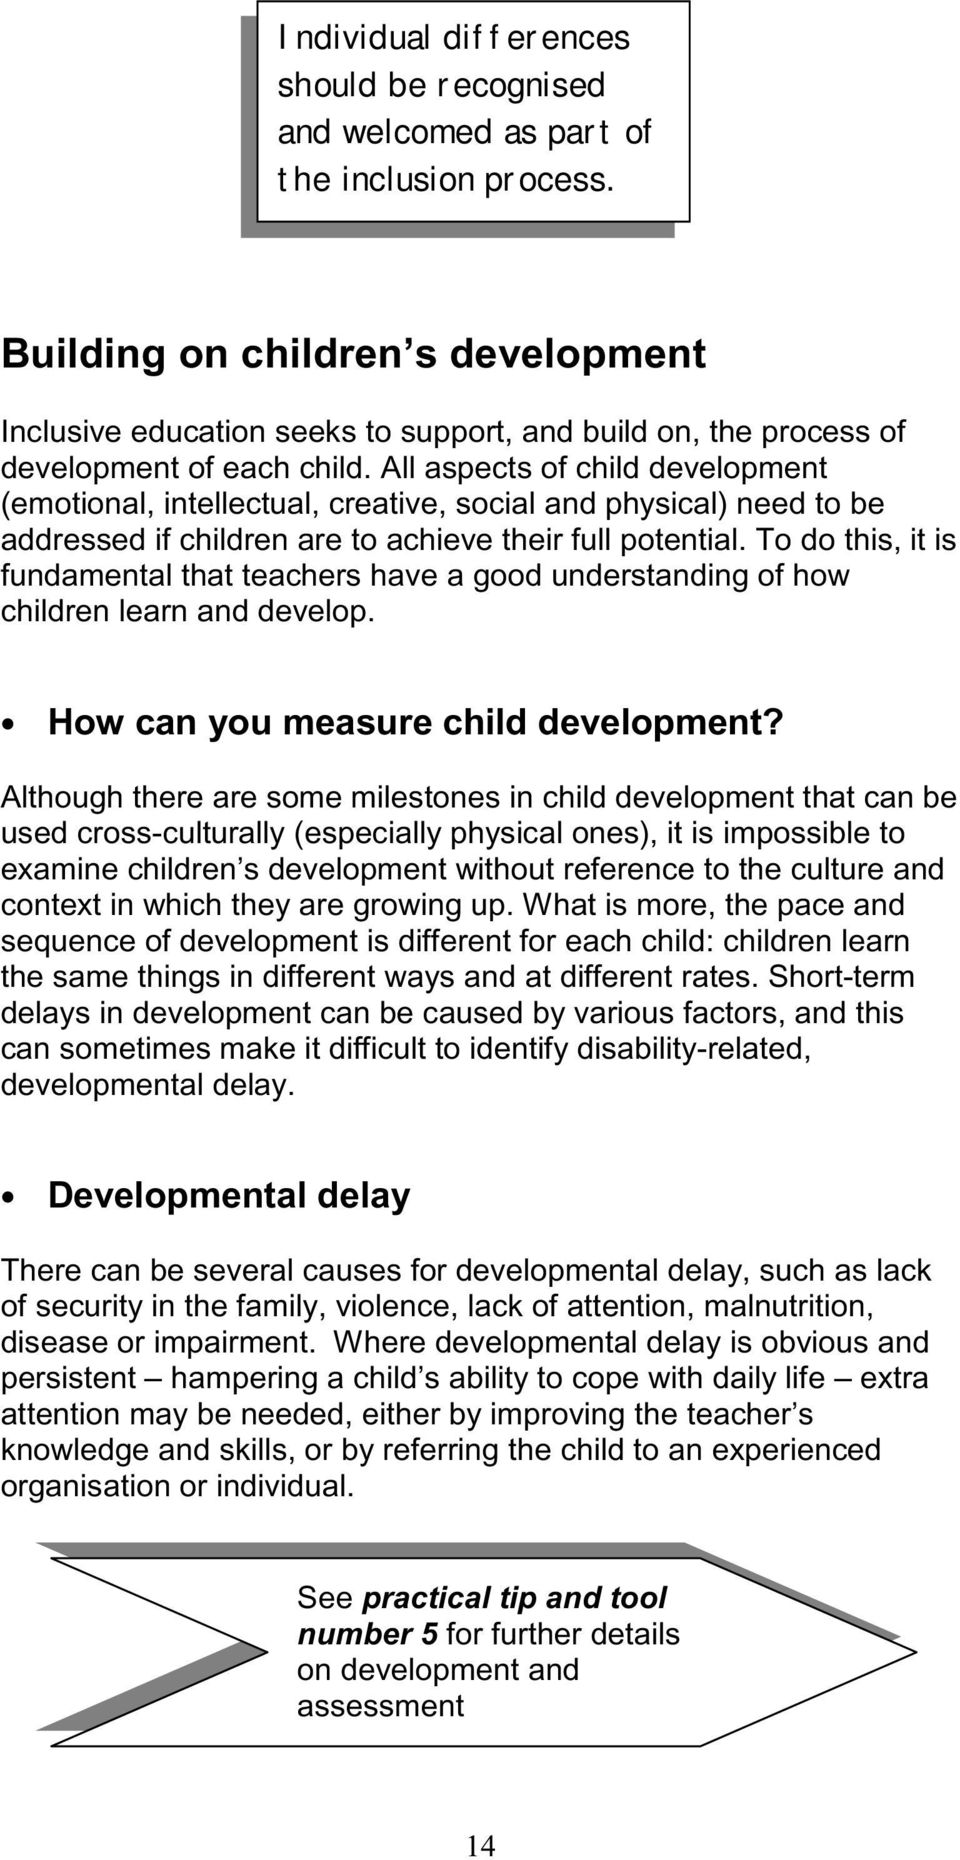 All aspects of child development (emotional, intellectual, creative, social and physical) need to be addressed if children are to achieve their full potential.